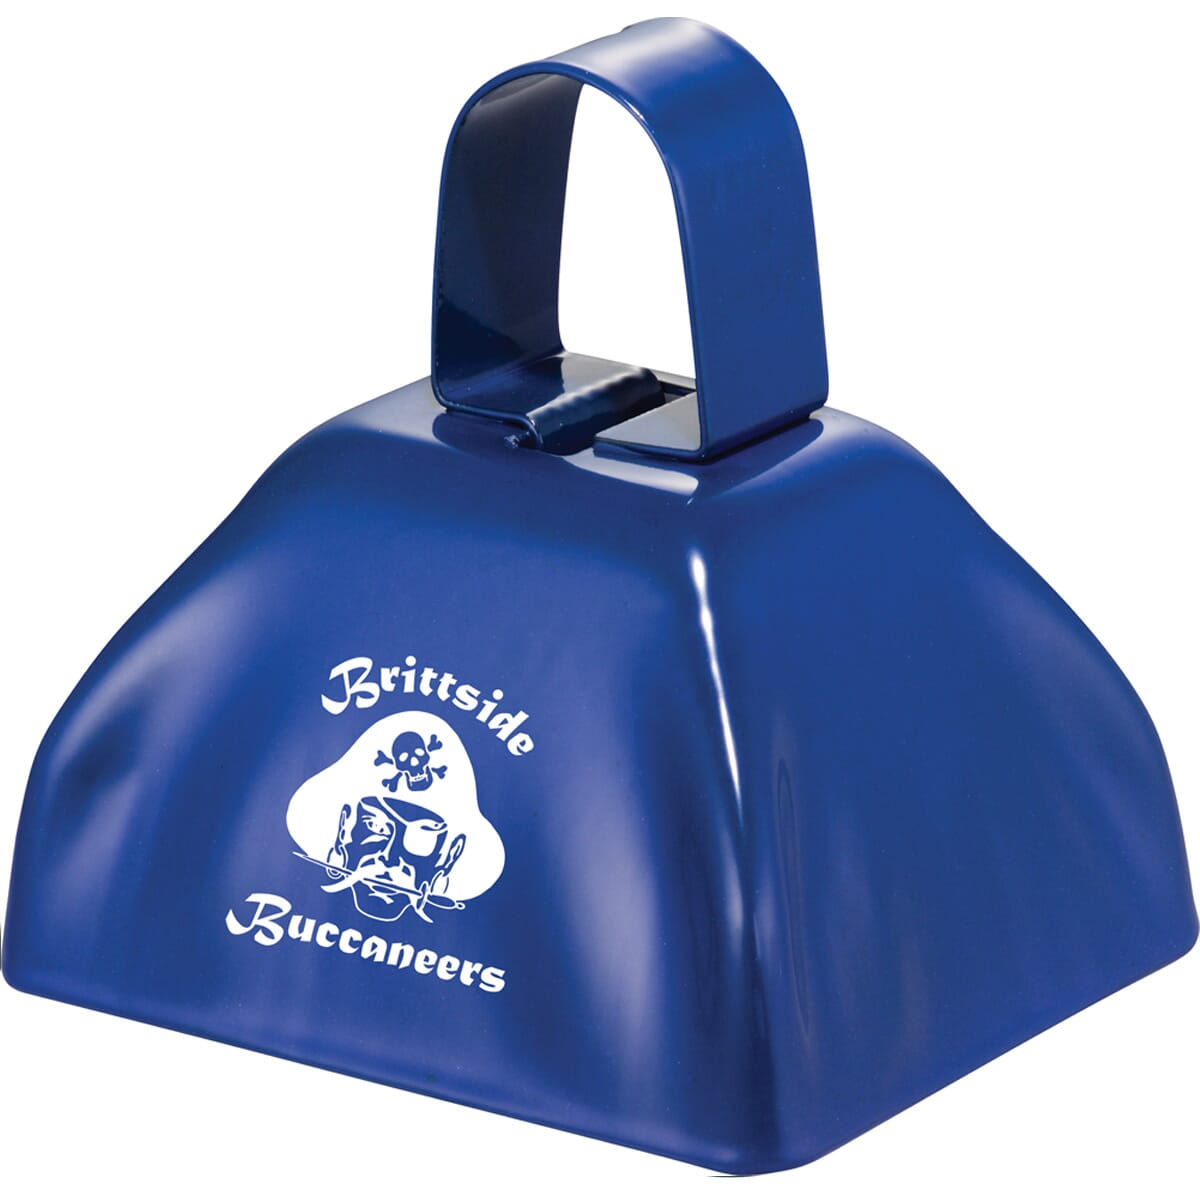 Royal blue cowbell with school logo and mascot